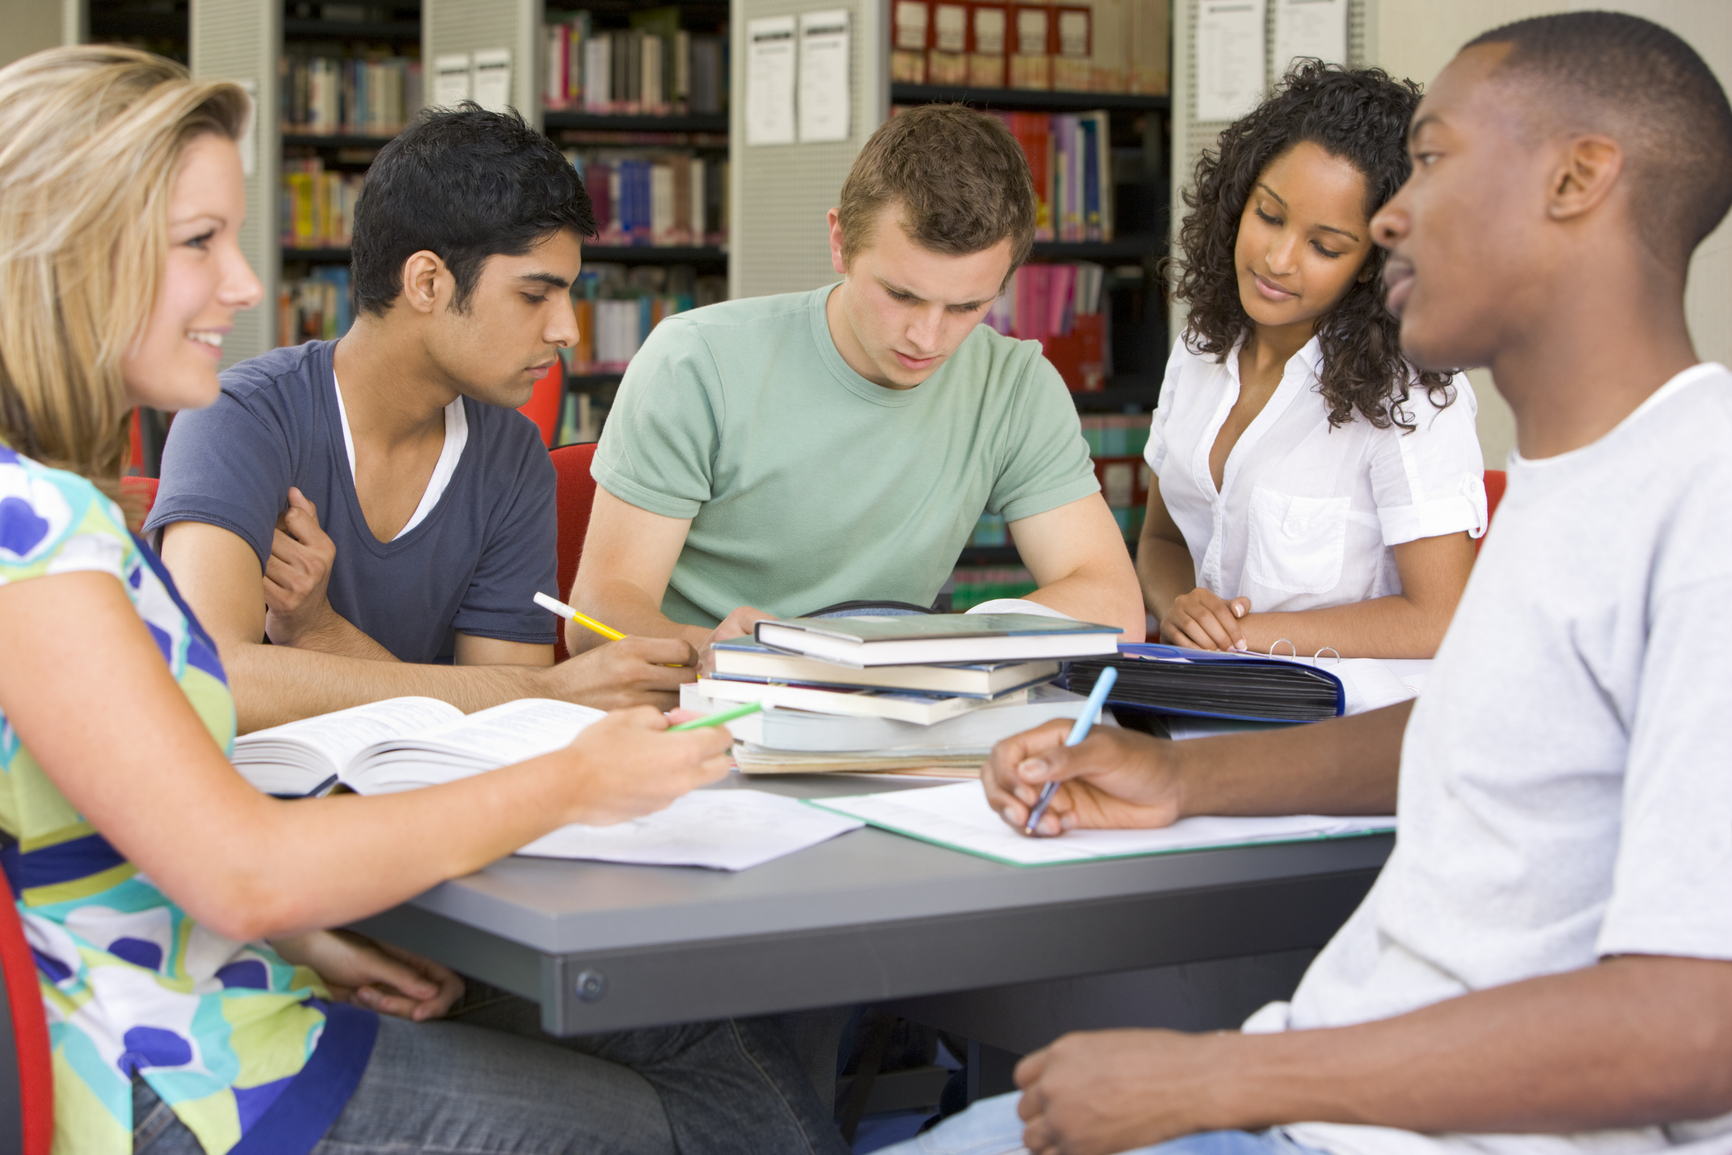 Academic Essay Helps Provides Students With Effective Tips On Writing Successfully